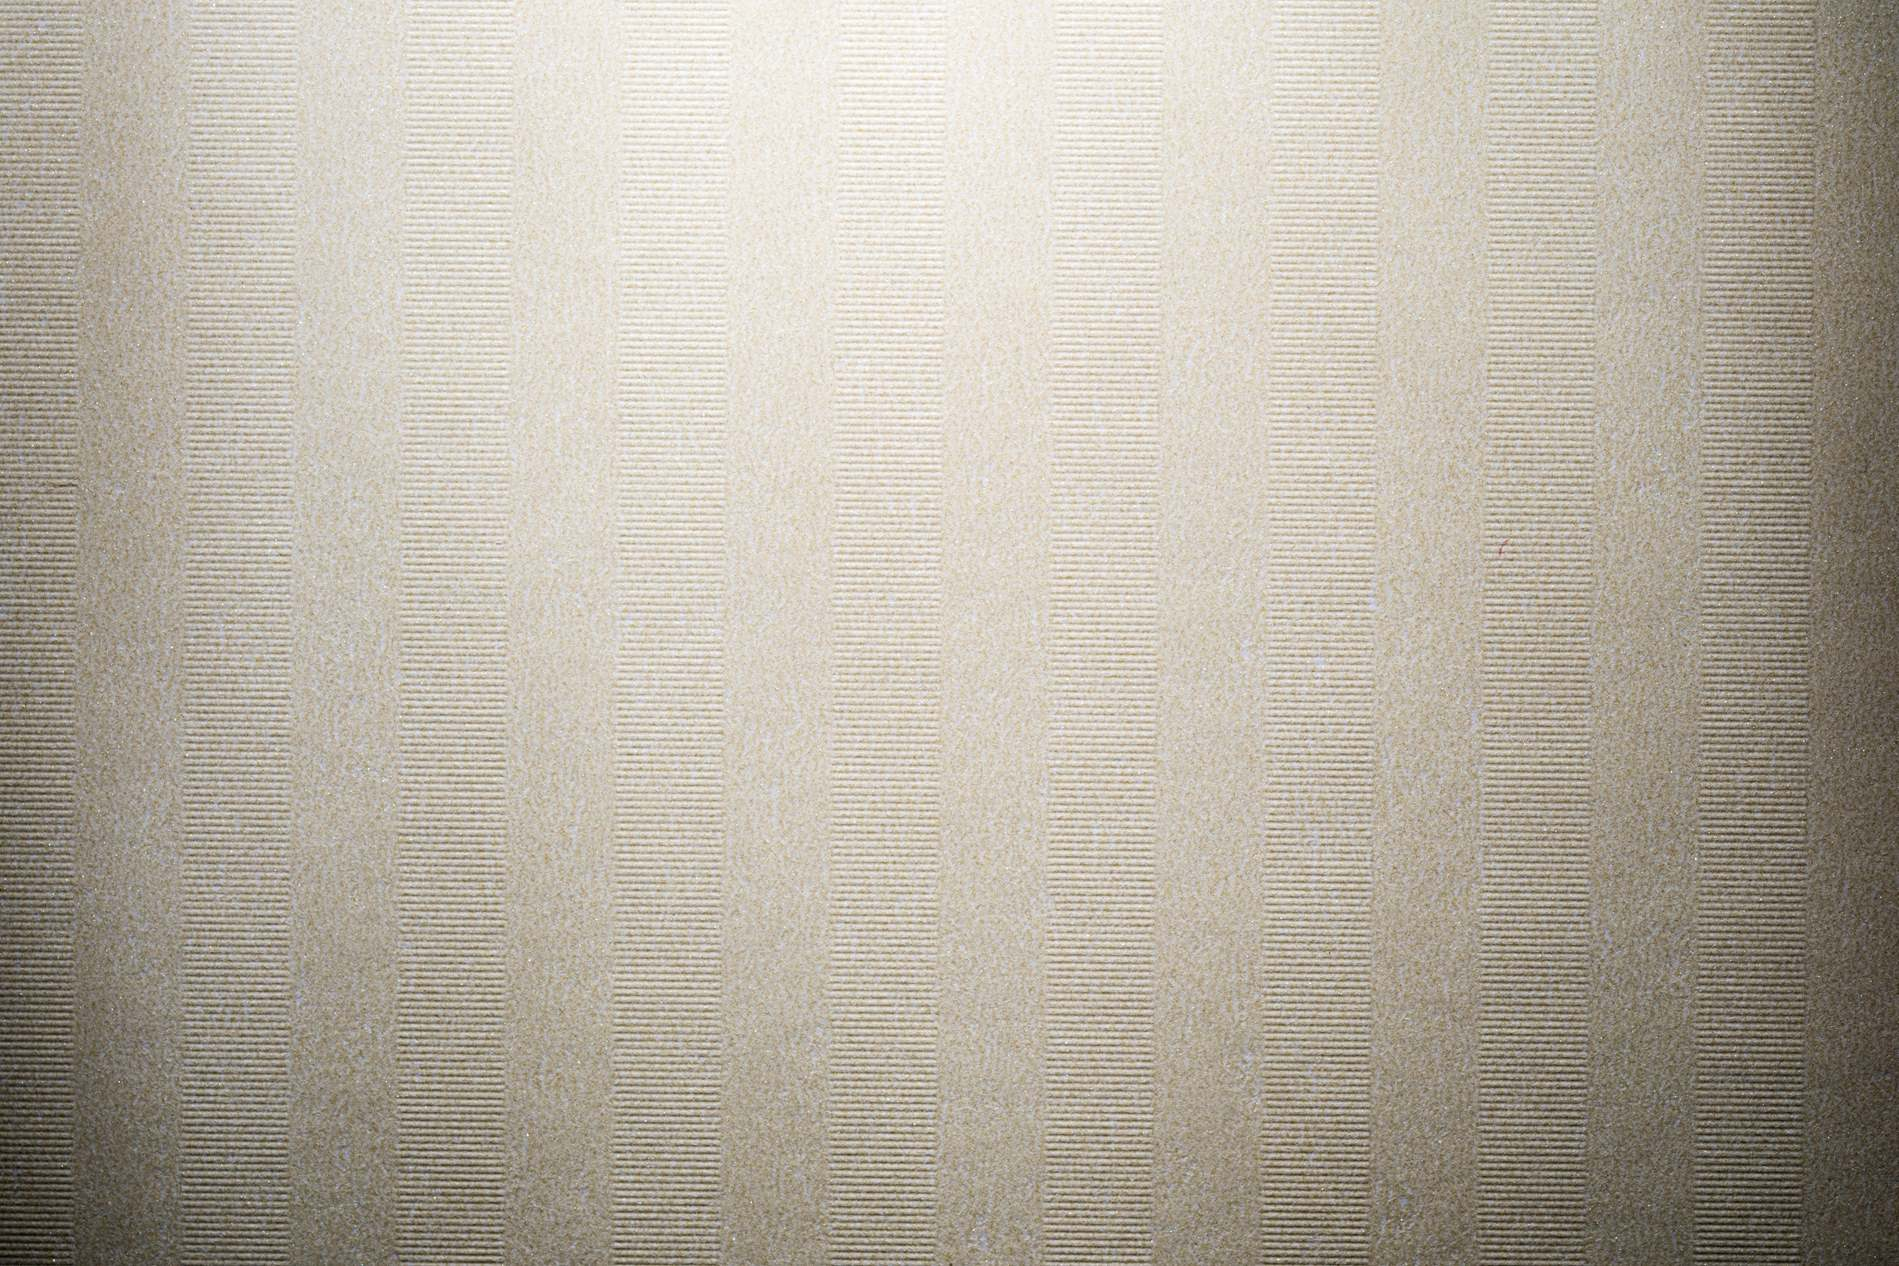 White Vintage Textured Paper Background